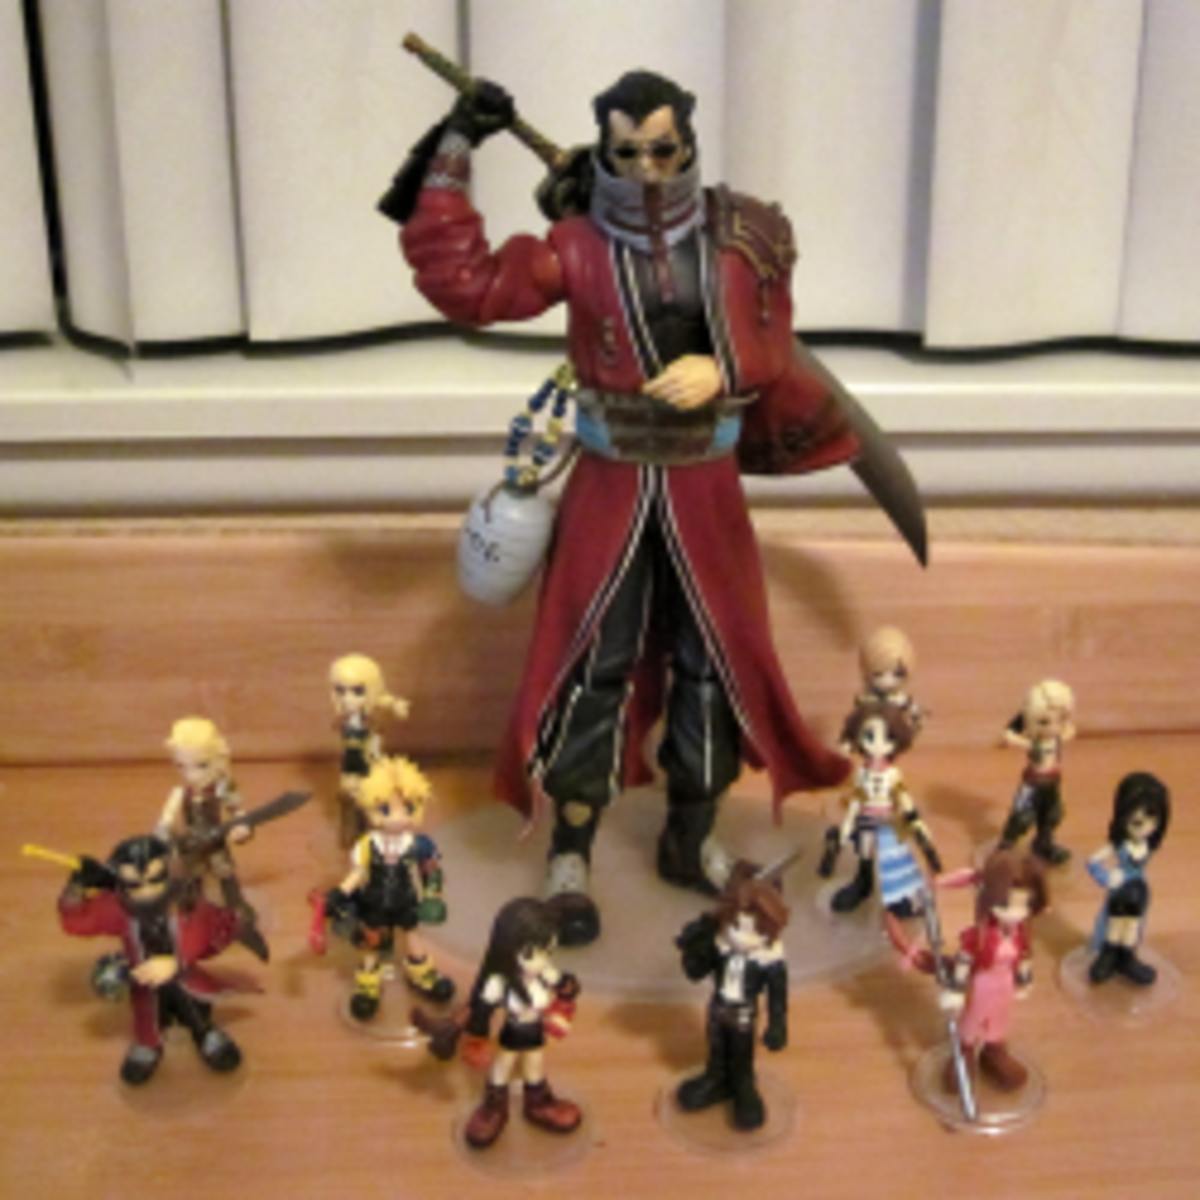 Final Fantasy Trading Arts Mini Figures: Watch Out for Counterfeits!